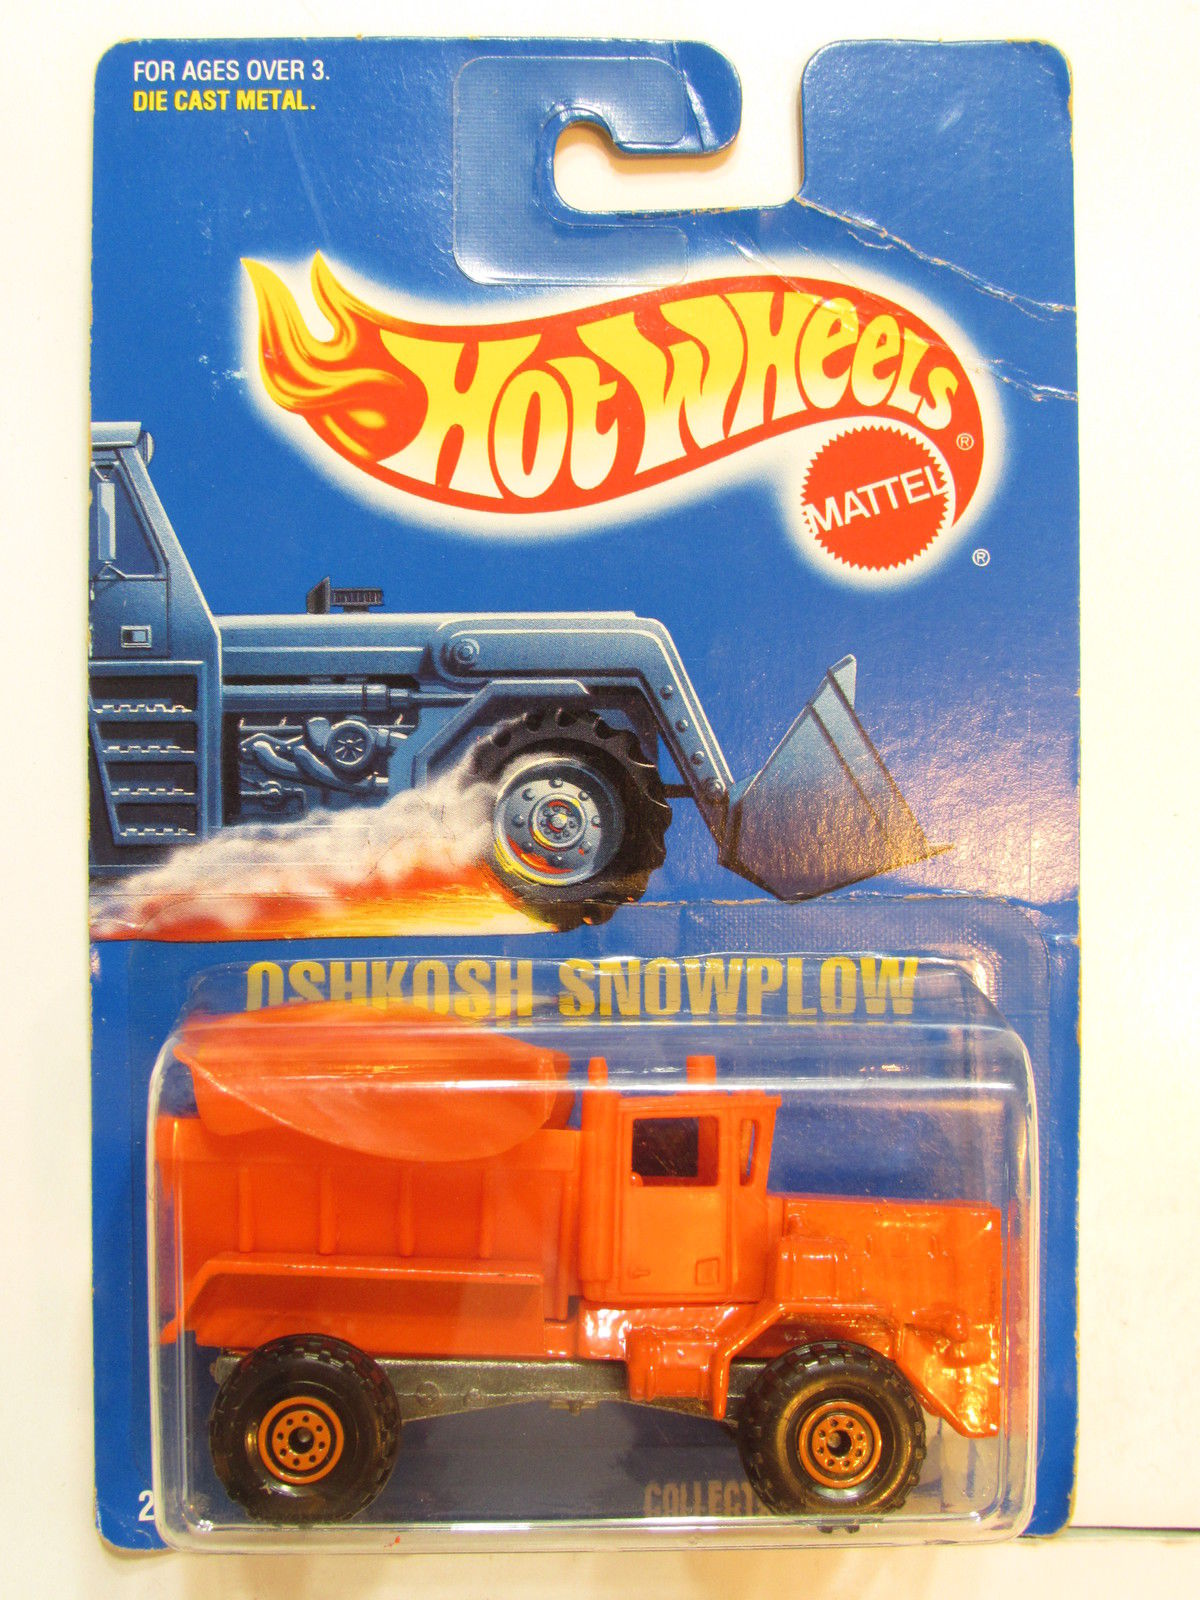 HOT WHEELS 1991 OSHKOSH SNOWPLOW # 201 ORANGE